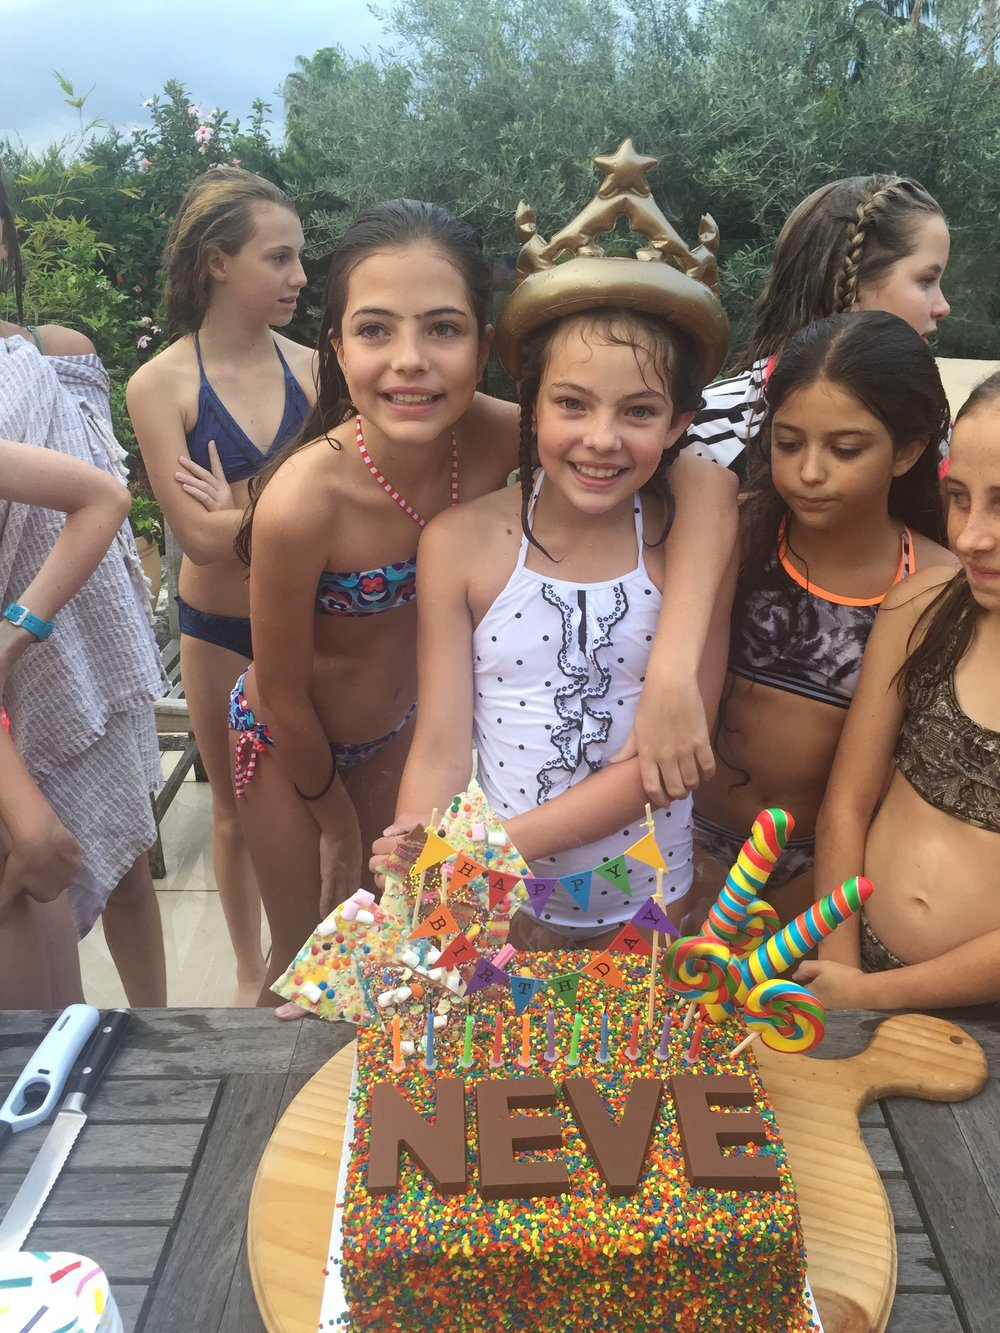 Be inspired by this Rainbow Unicorn Themed Pool Party, created by The Real Housewives of Sydney's Nicole O'Neil for her daughter Neve's 11th Birthday. Featuring a beautiful rainbow snack bar, rainbow sprinkle cake and much more.